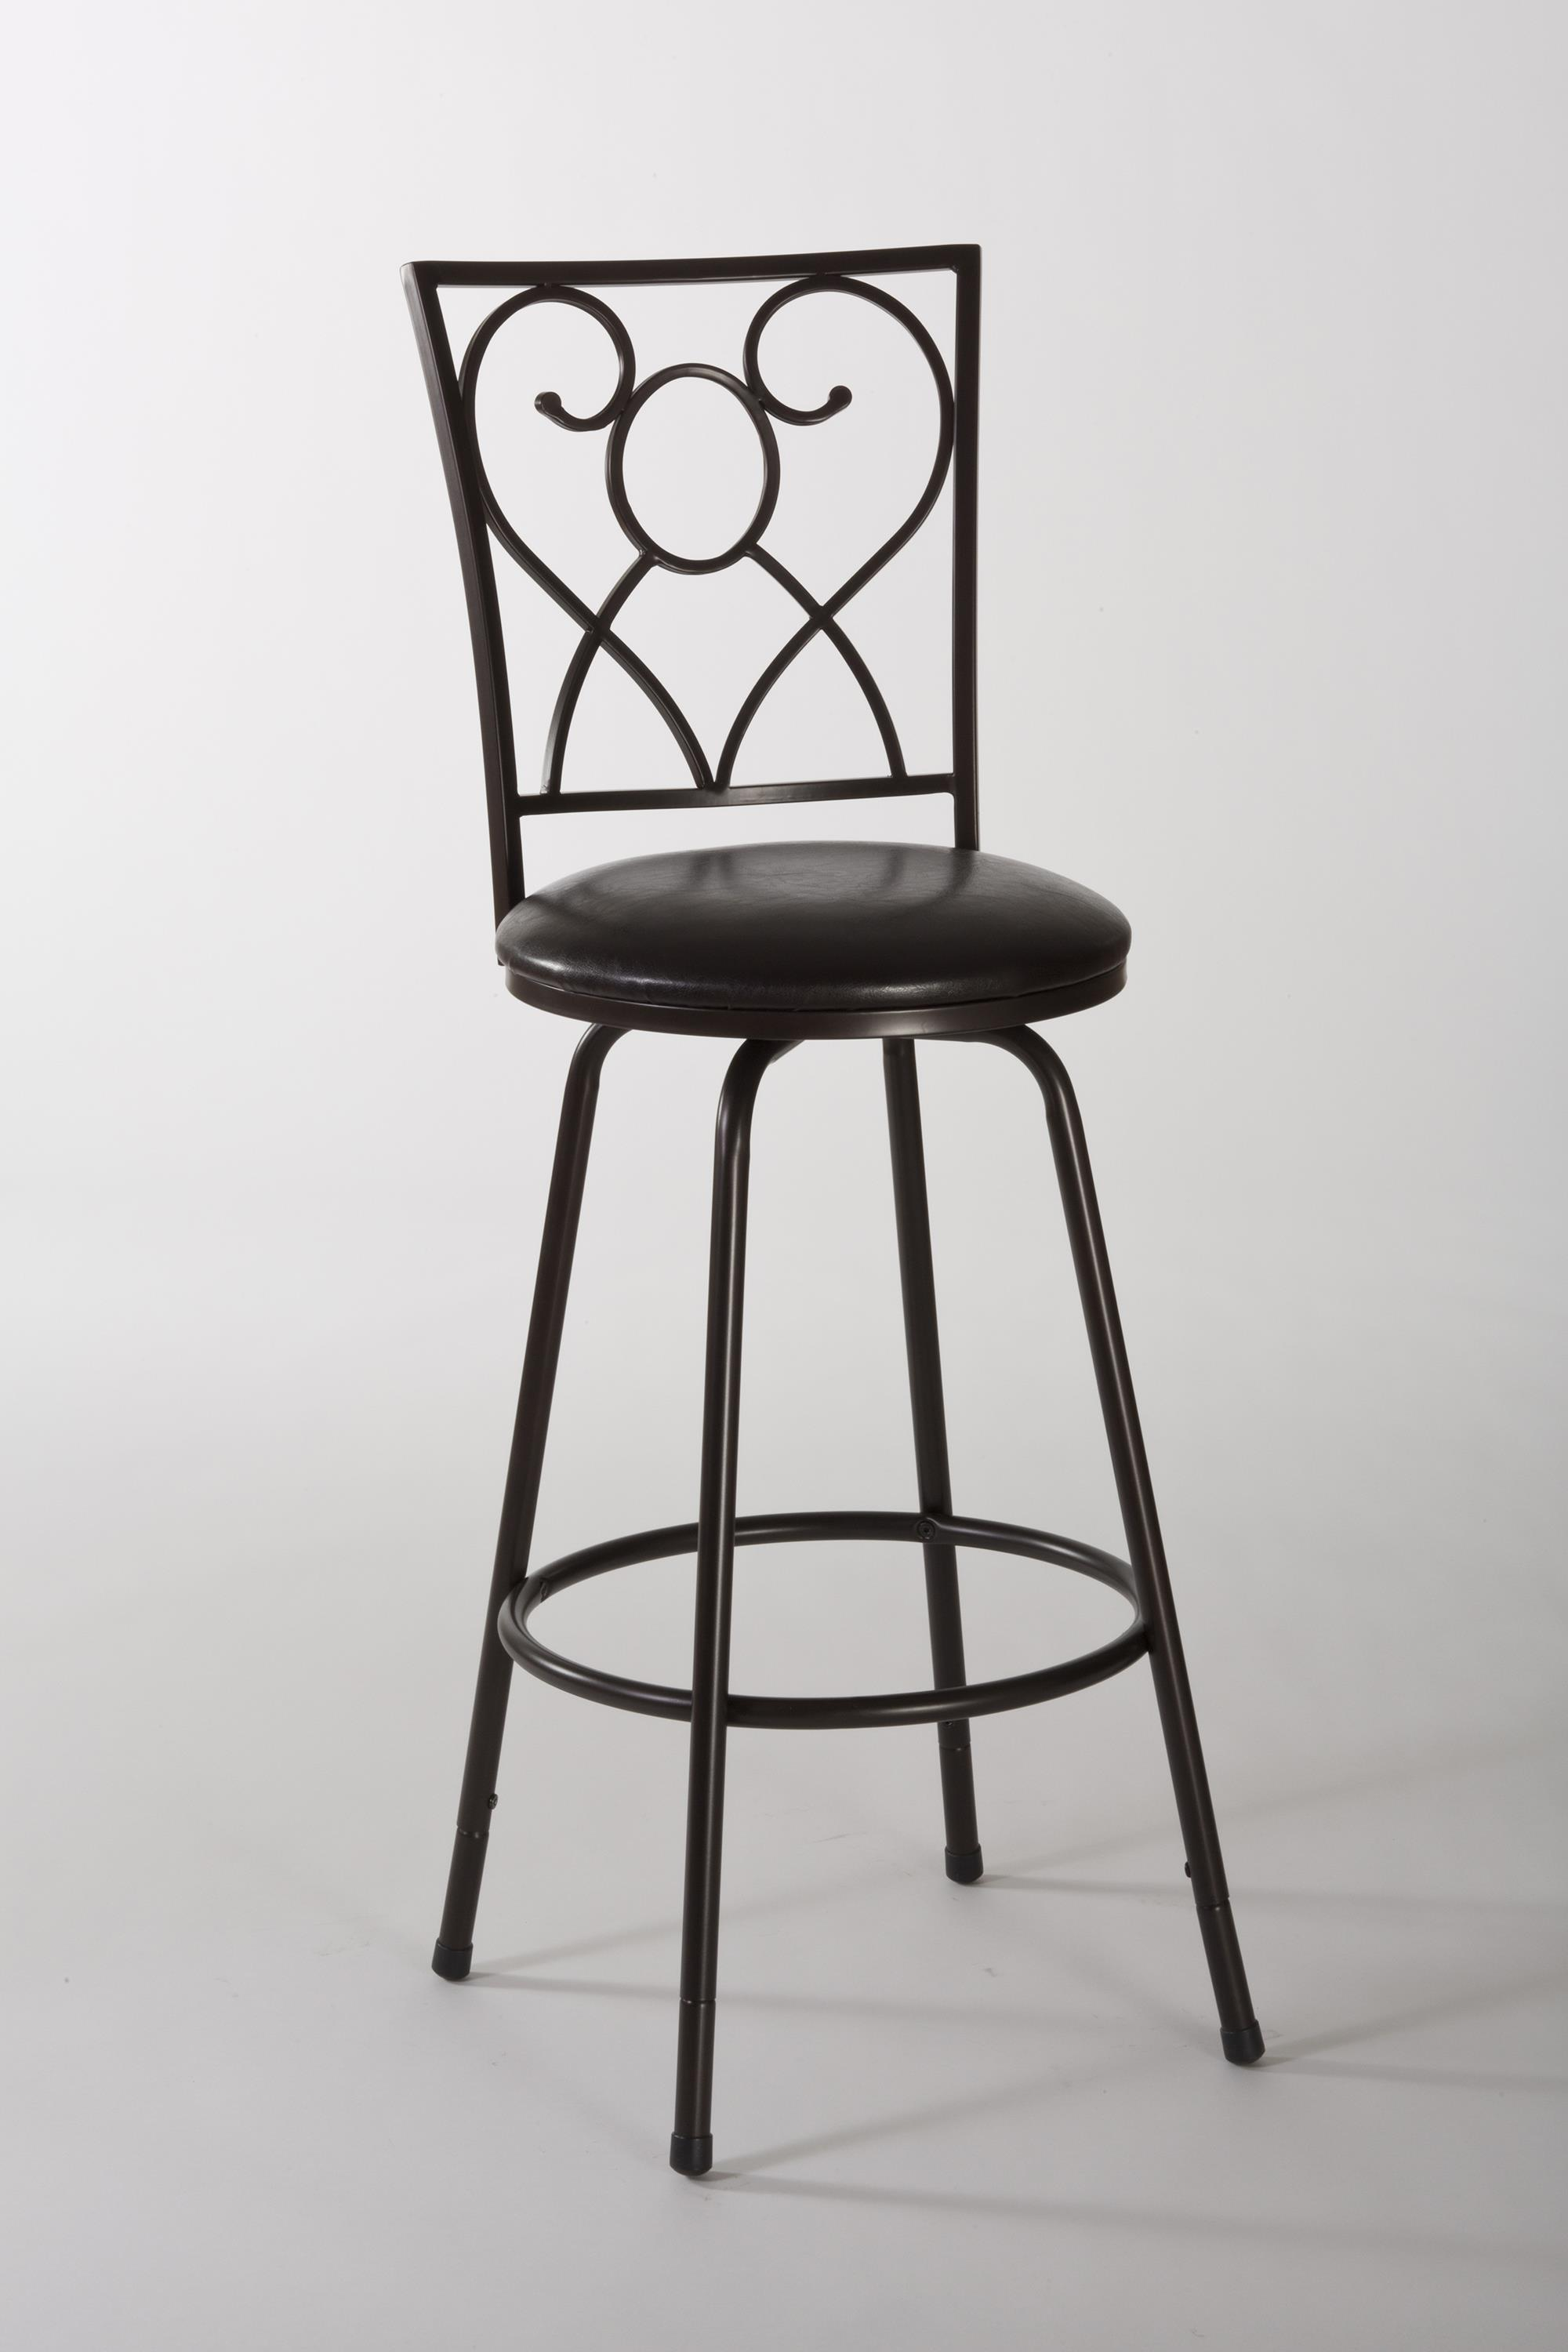 Hillsdale Metal Stools Bellesol Swivel Counter/ Bar Stool - Item Number: 5253-830S